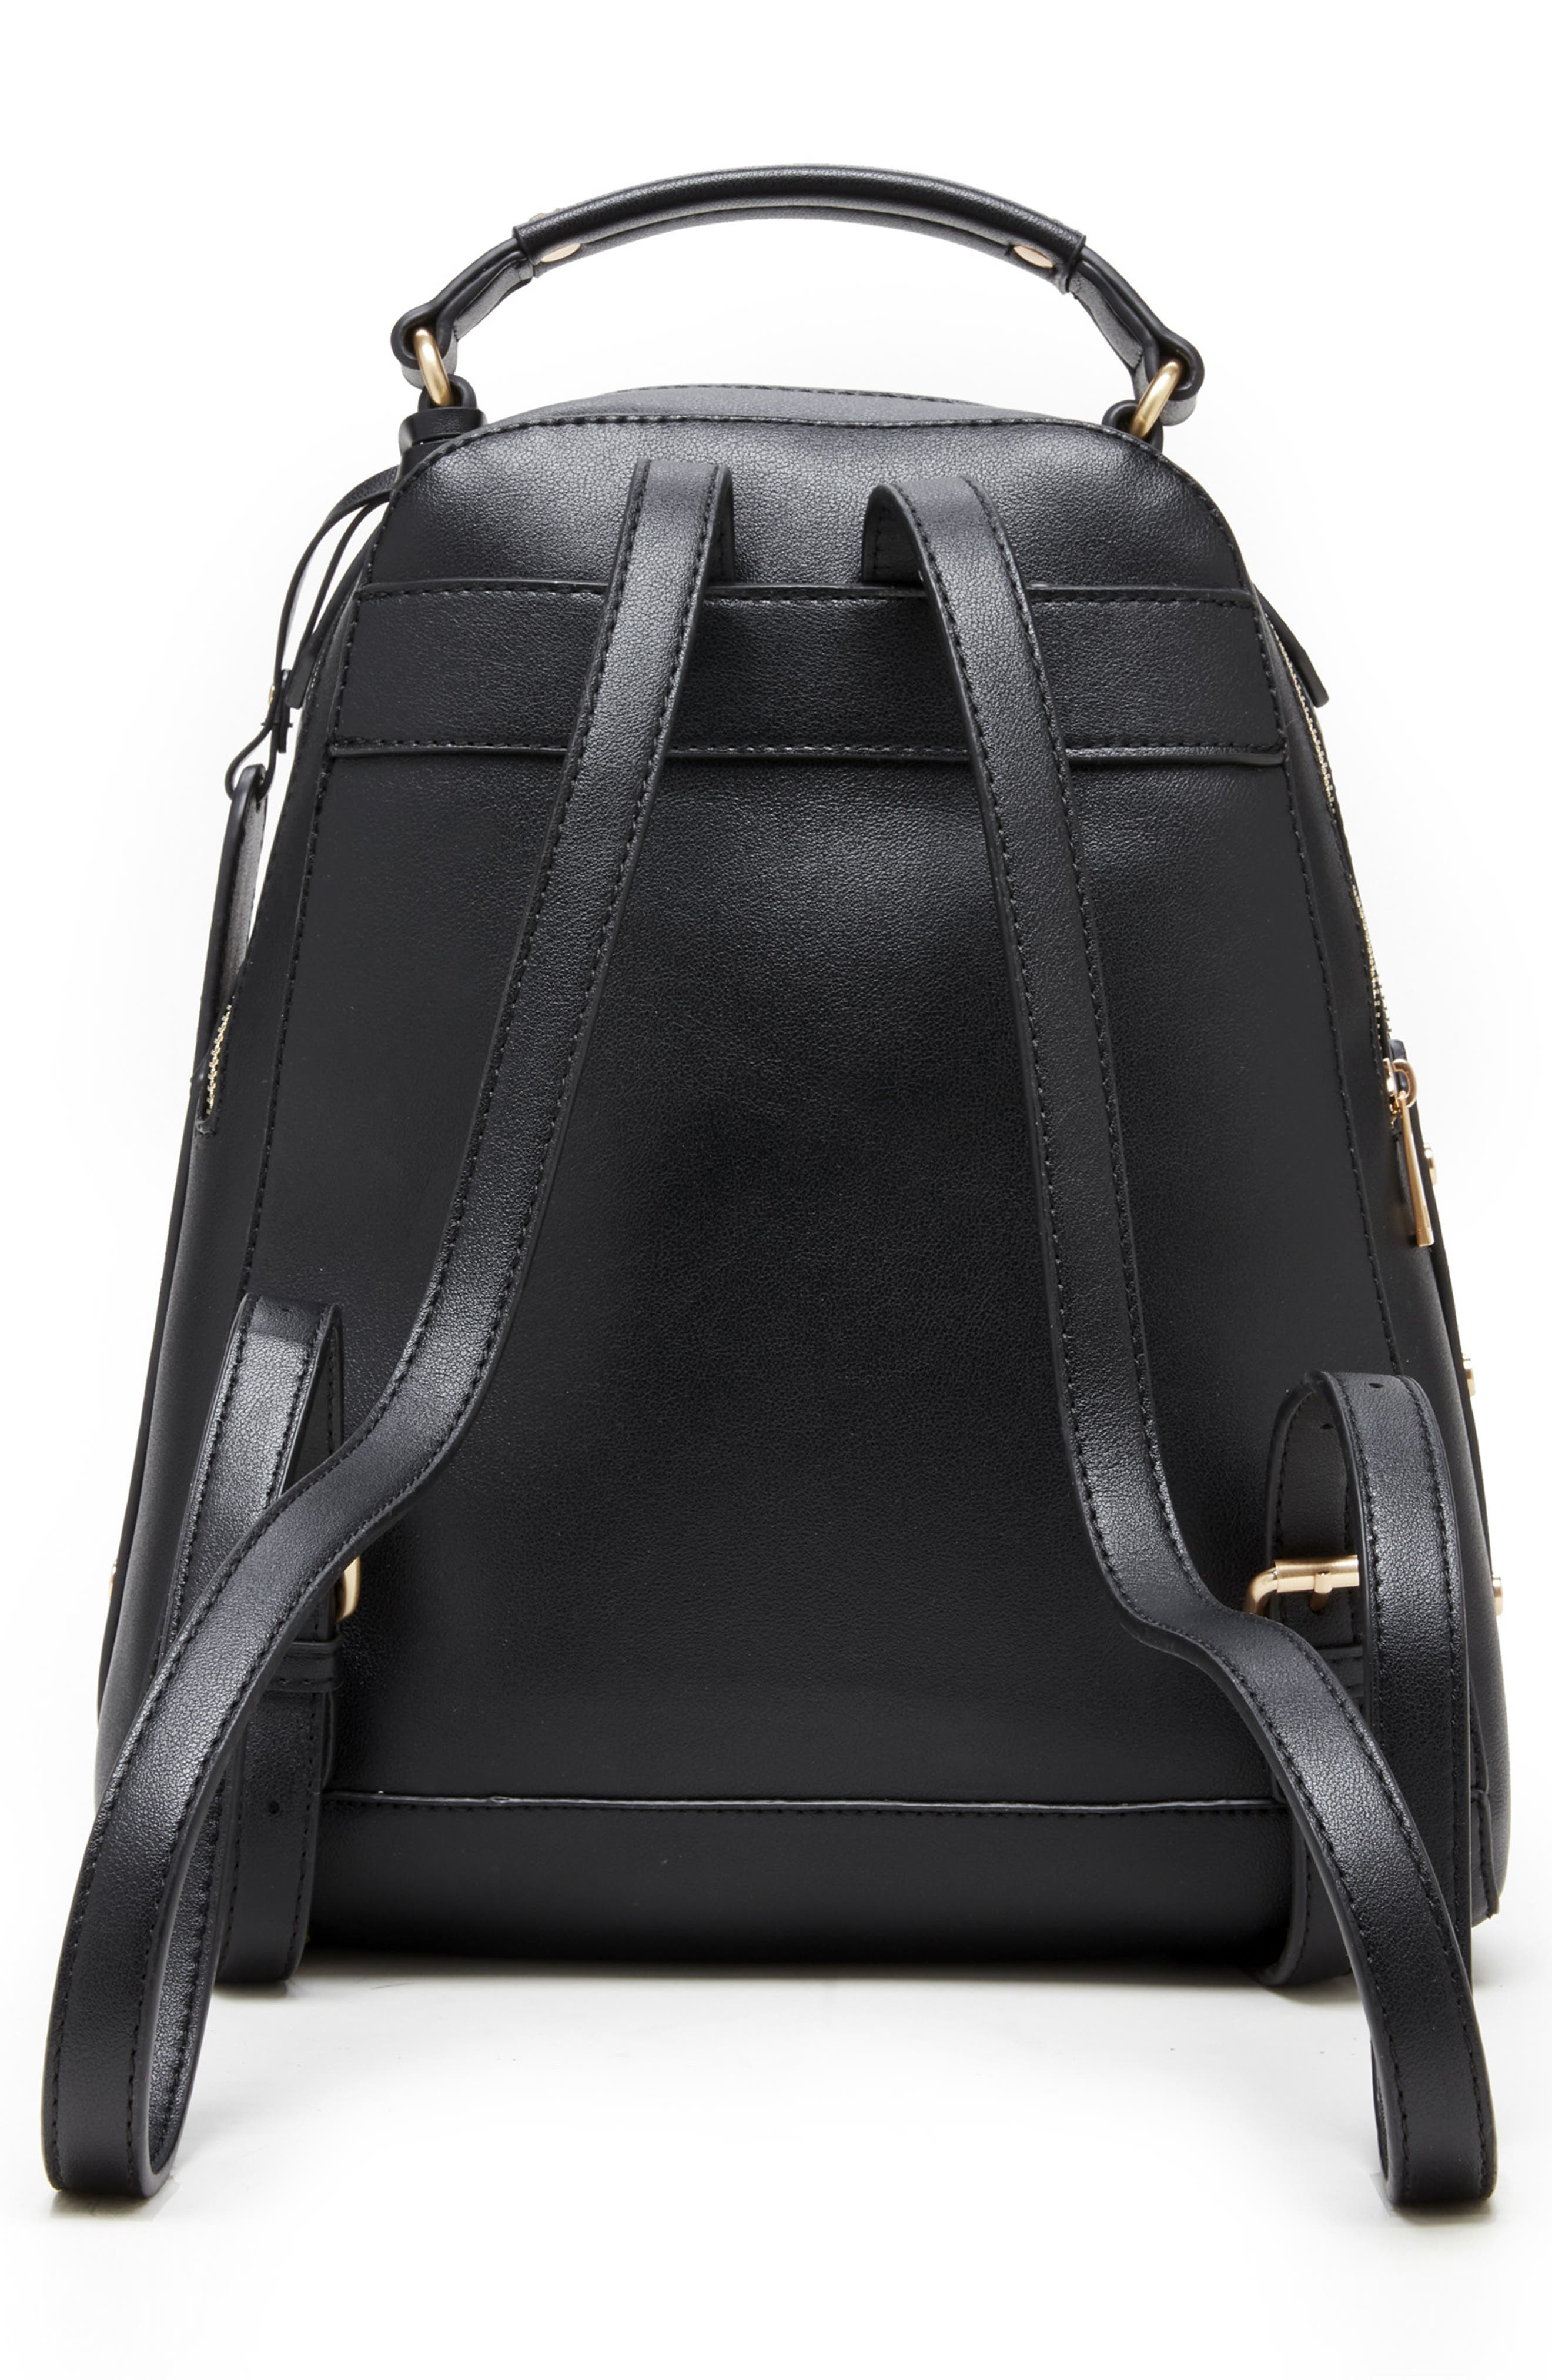 SOLE SOCIETY, Hingi Faux Leather Backpack, Alternate thumbnail 2, color, 001